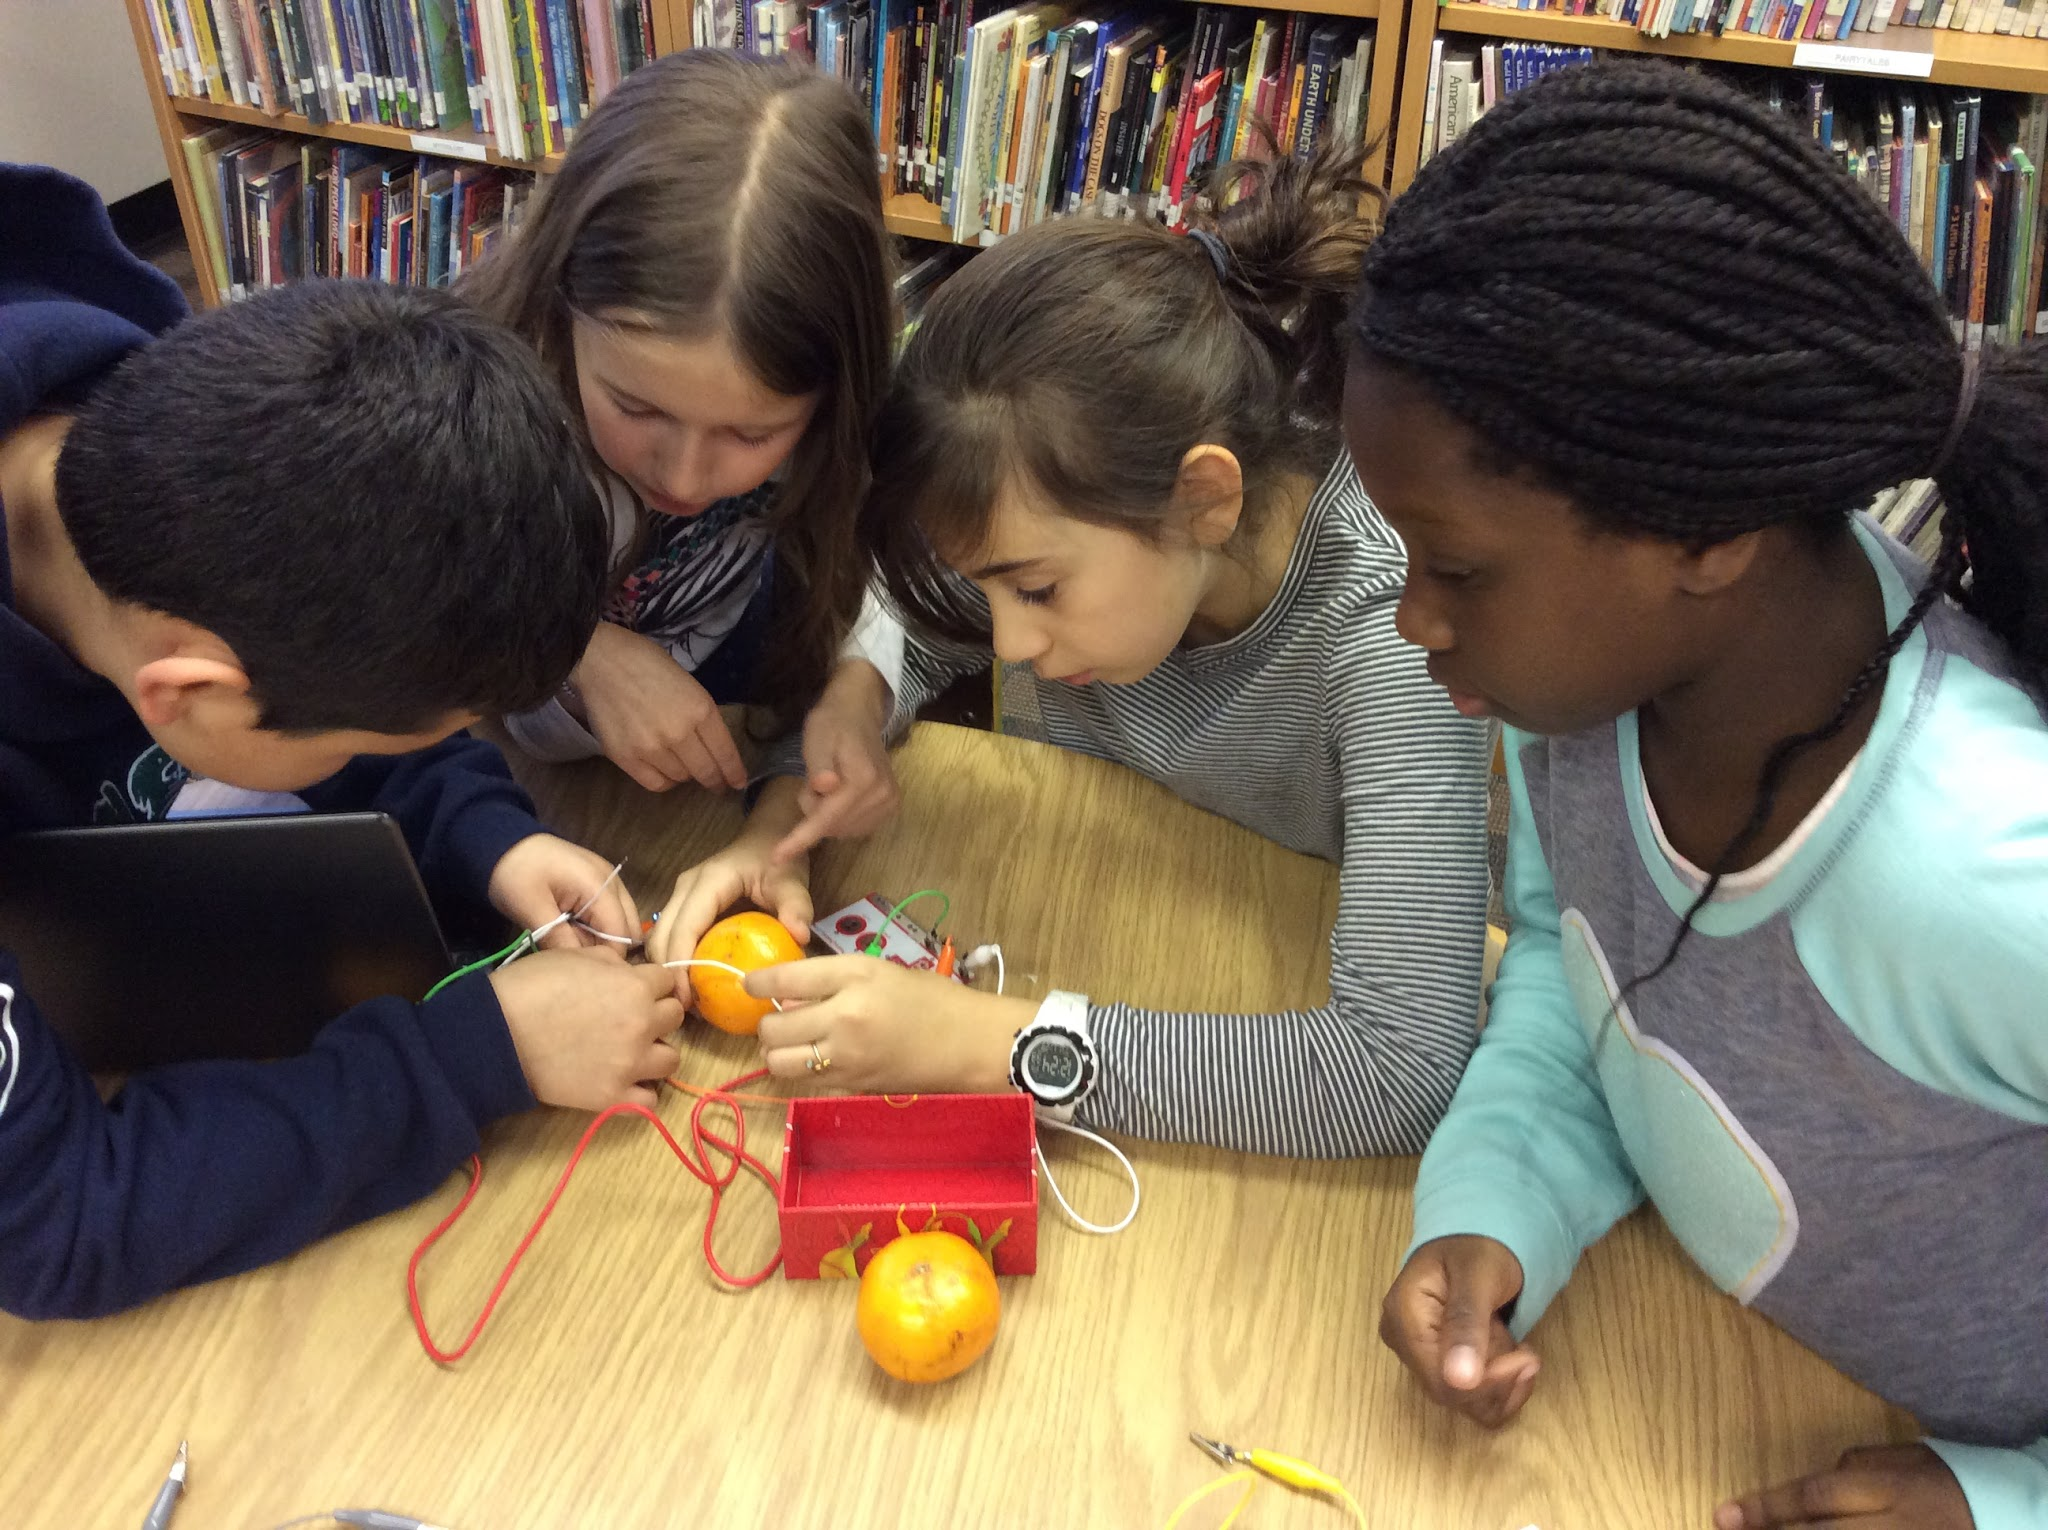 Students working on building circuits with Makey Makey system.